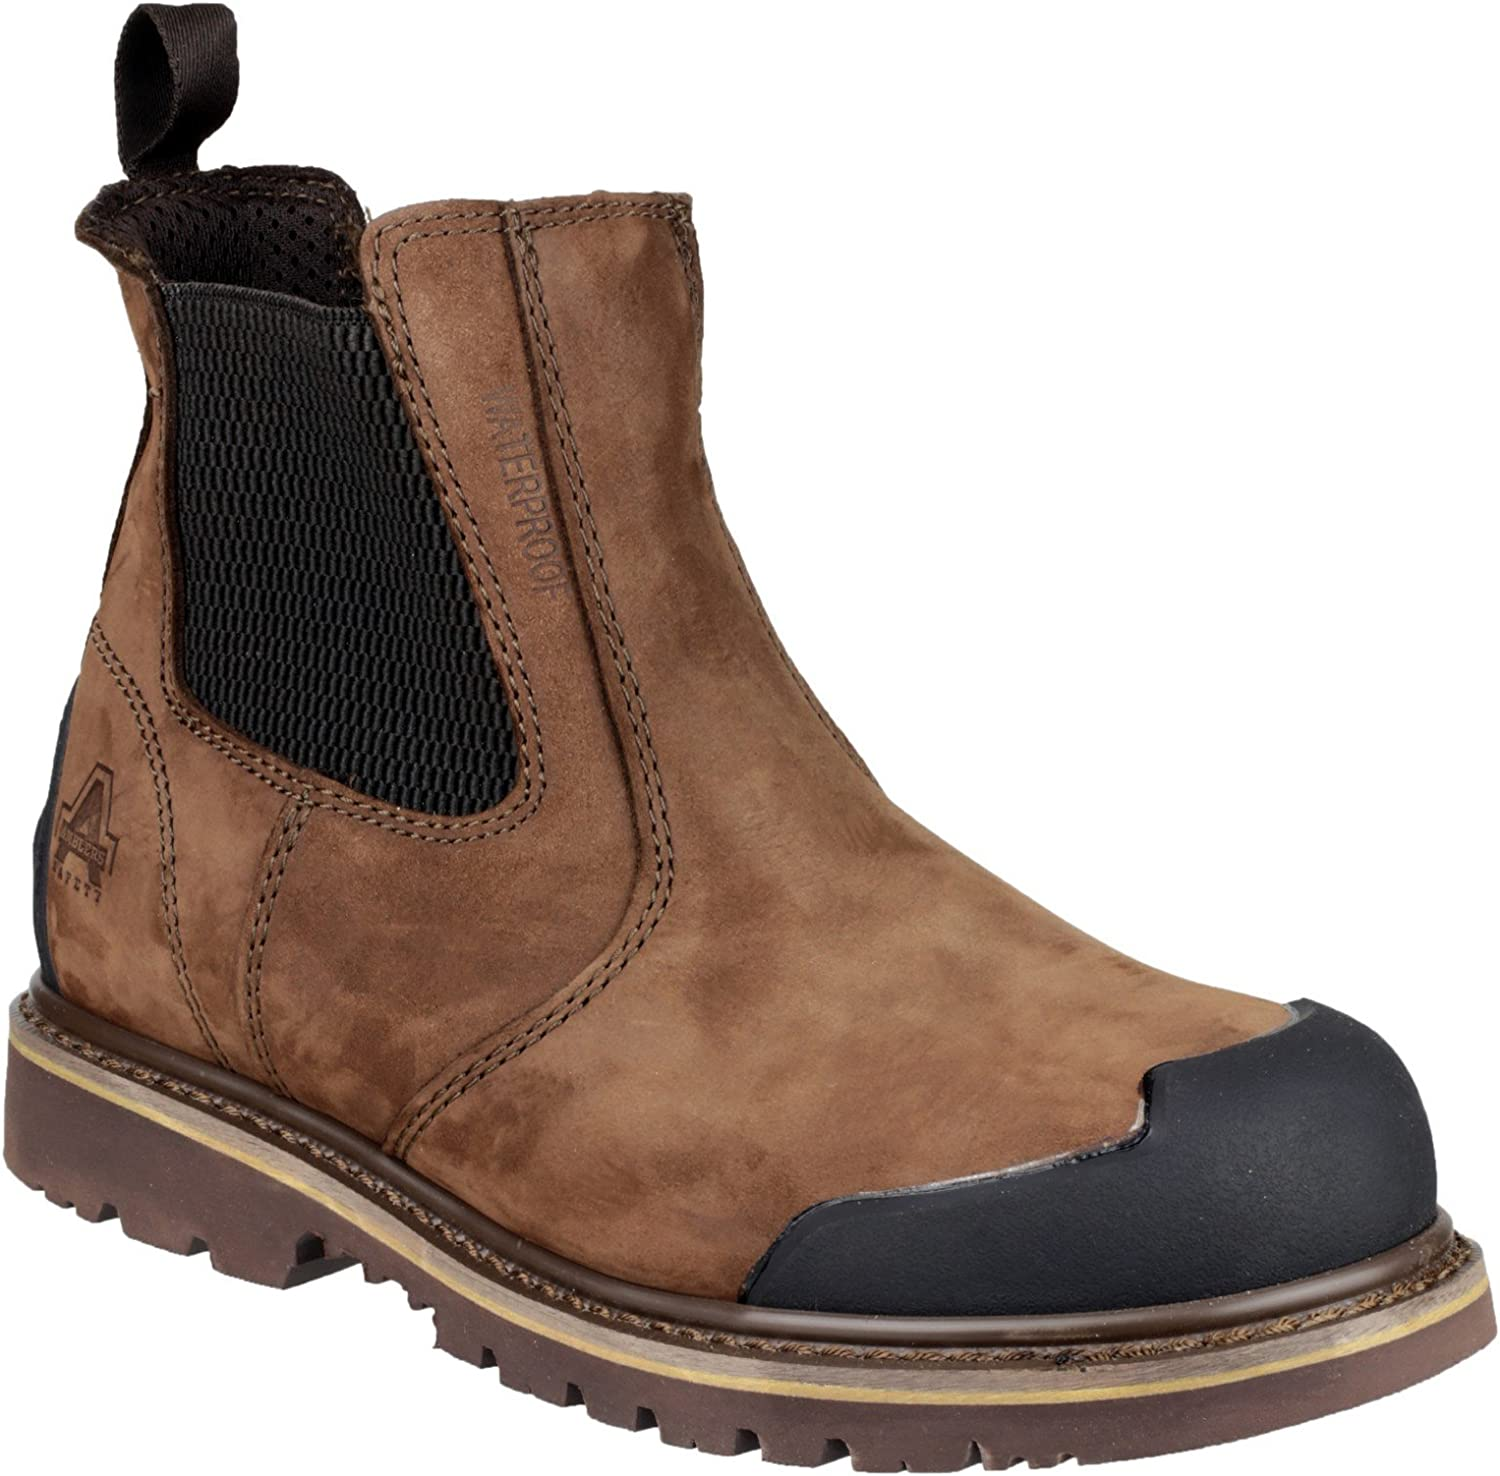 Amblers Safety FS225 Boot Mens Boots Steel Toe Cap Work Leather Footwear